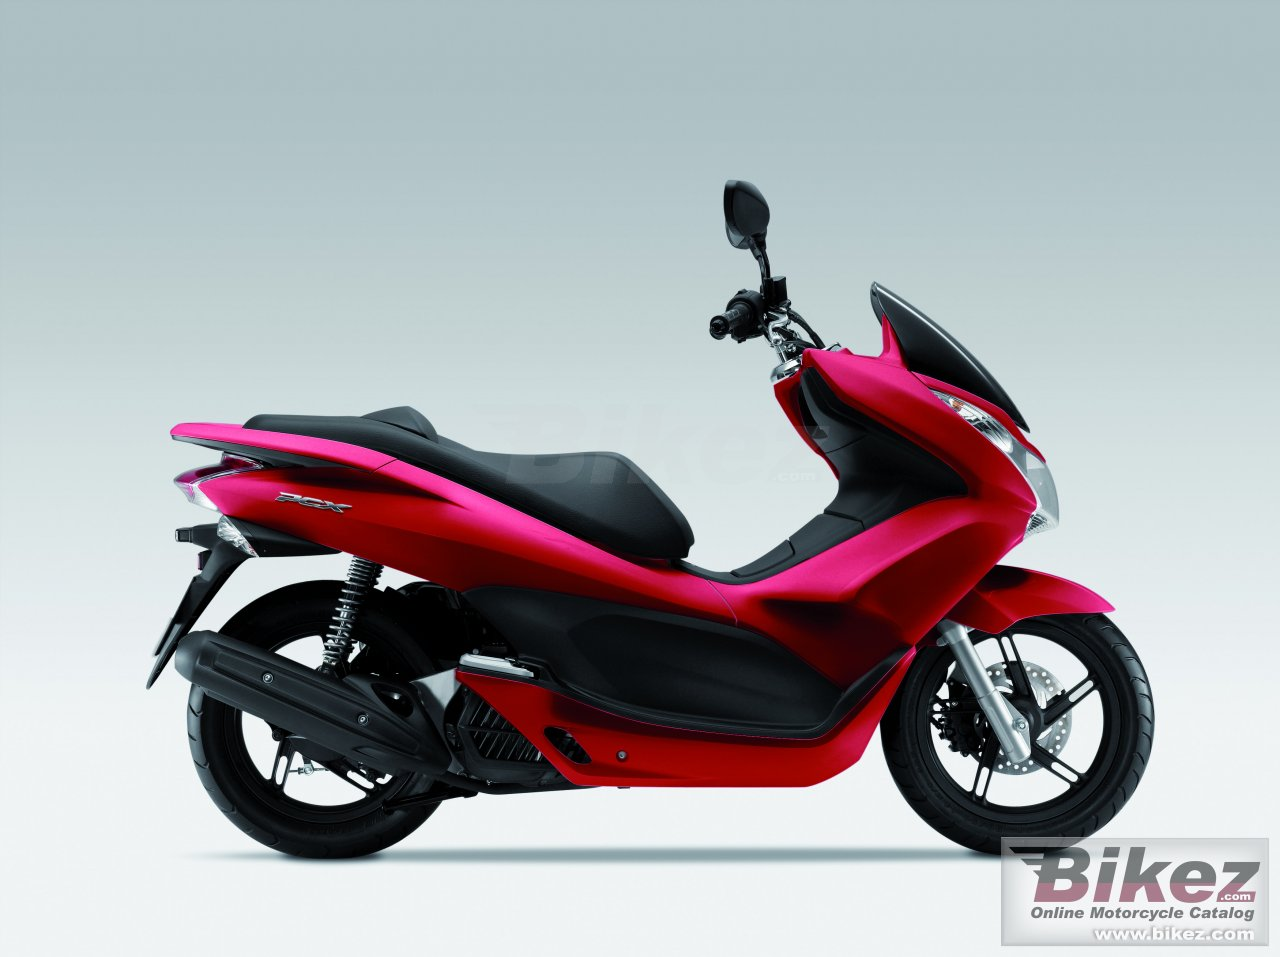 Big Honda pcx 125 picture and wallpaper from Bikez.com